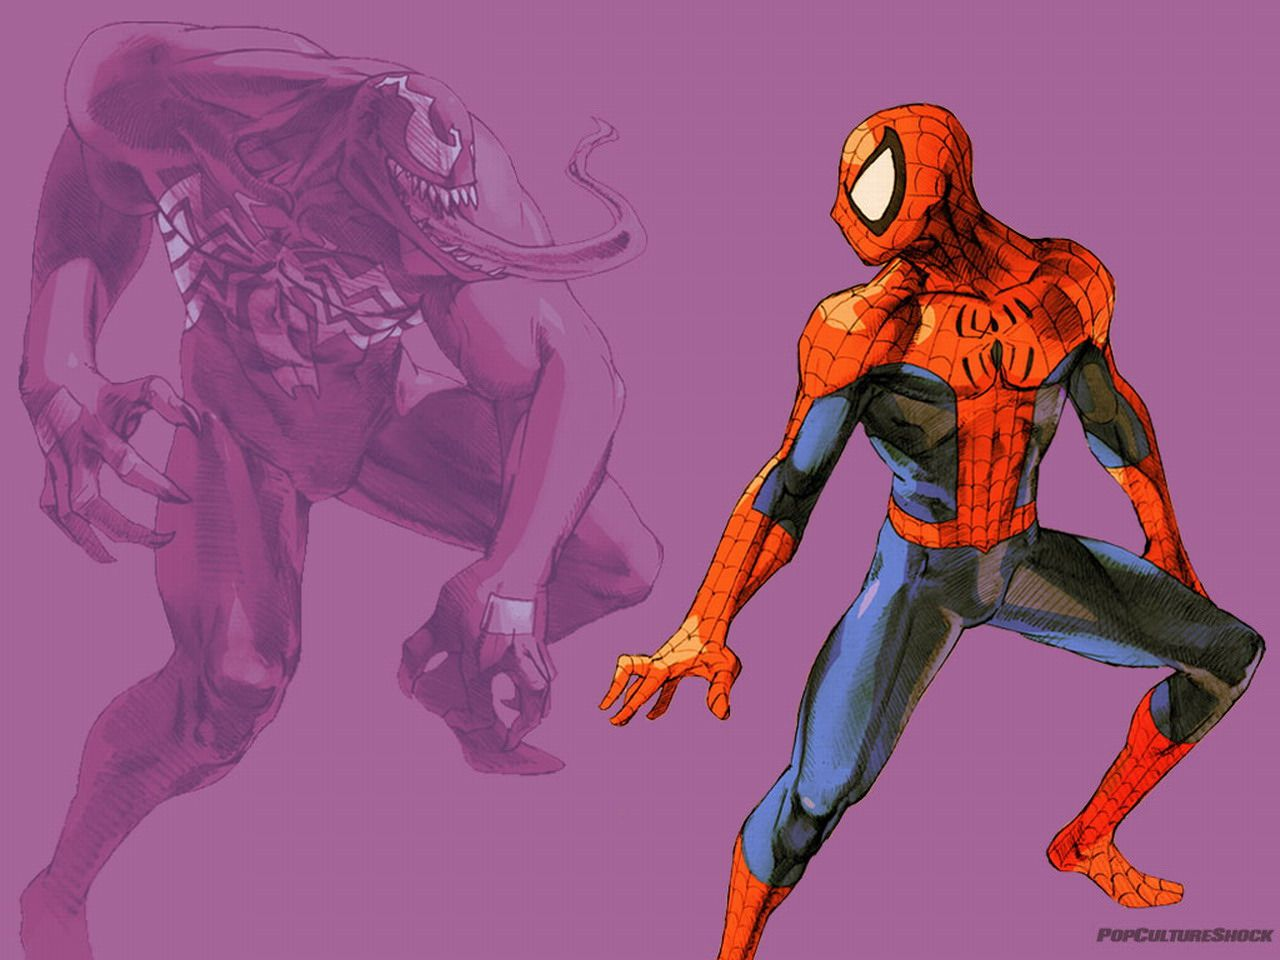 High Resolution Marvel and DC Comics Wallpaper for Mobile